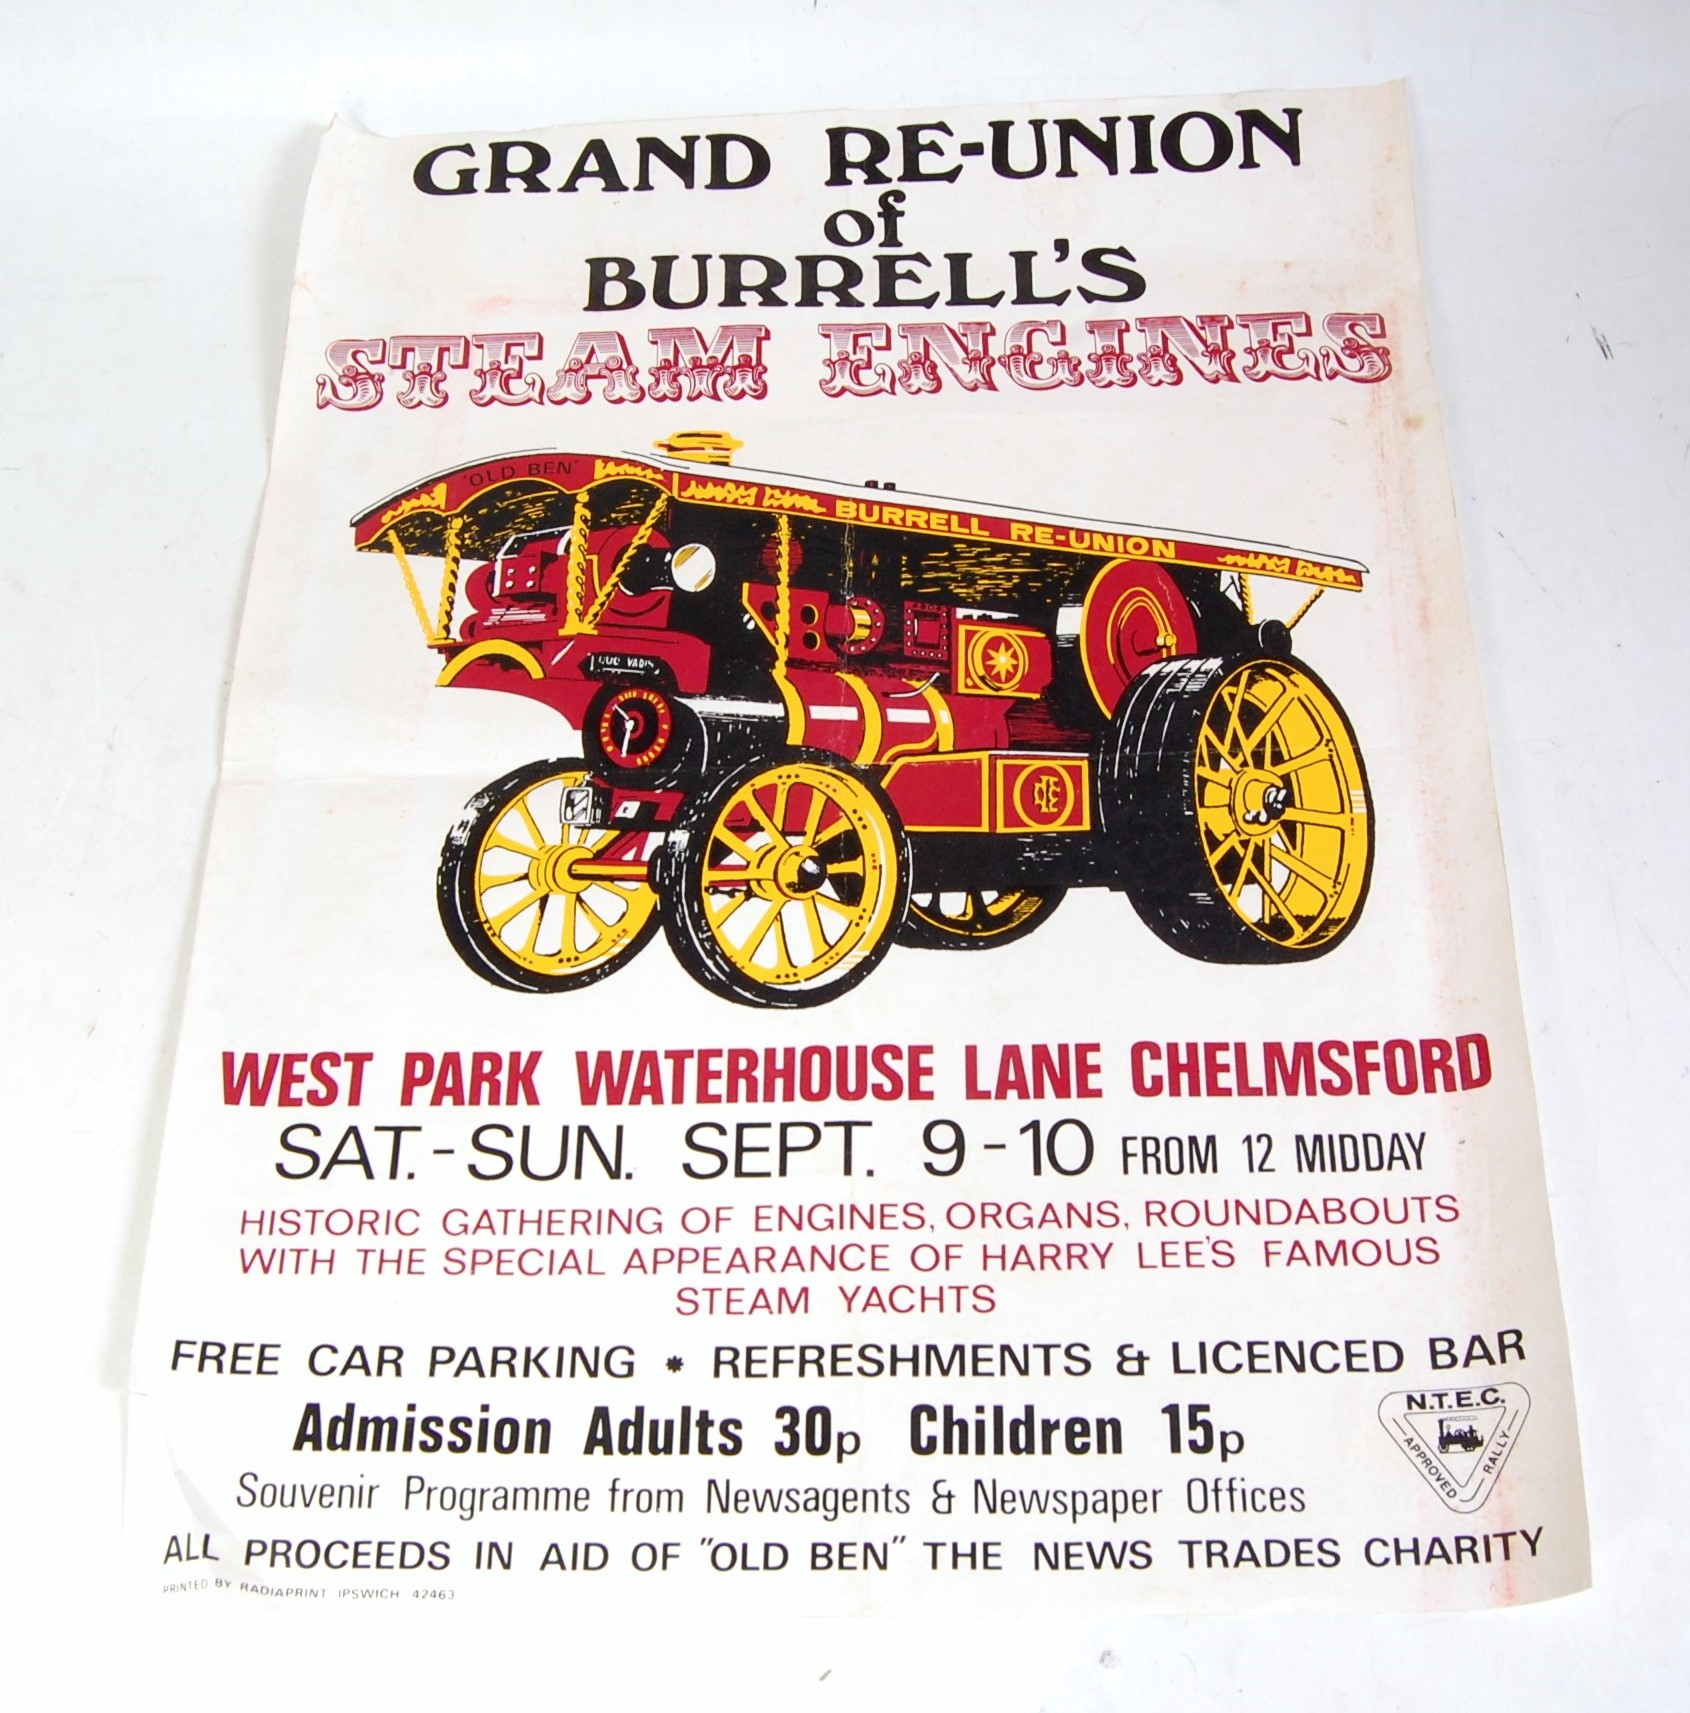 Lot 16 - An original late 20th century Grand Reunion of Burrells Steam Engines advertising poster taking